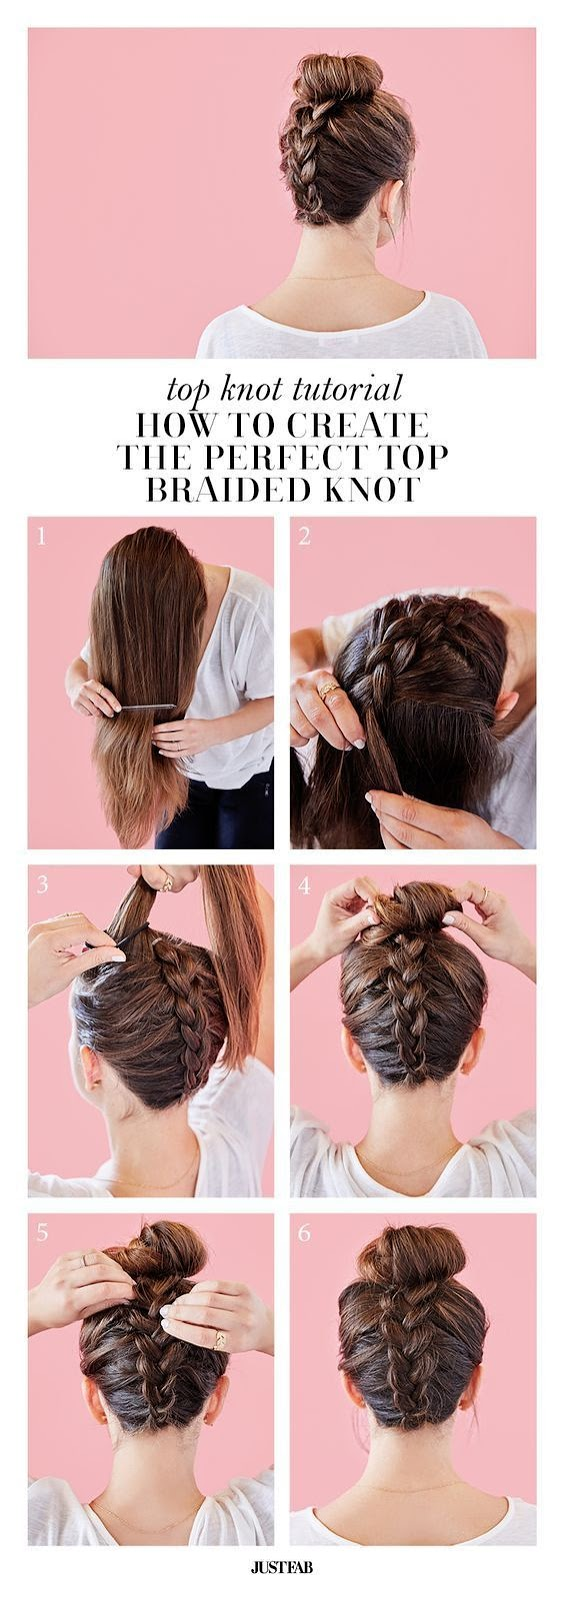 Top Braided Knot Easy Women's Hairstyles